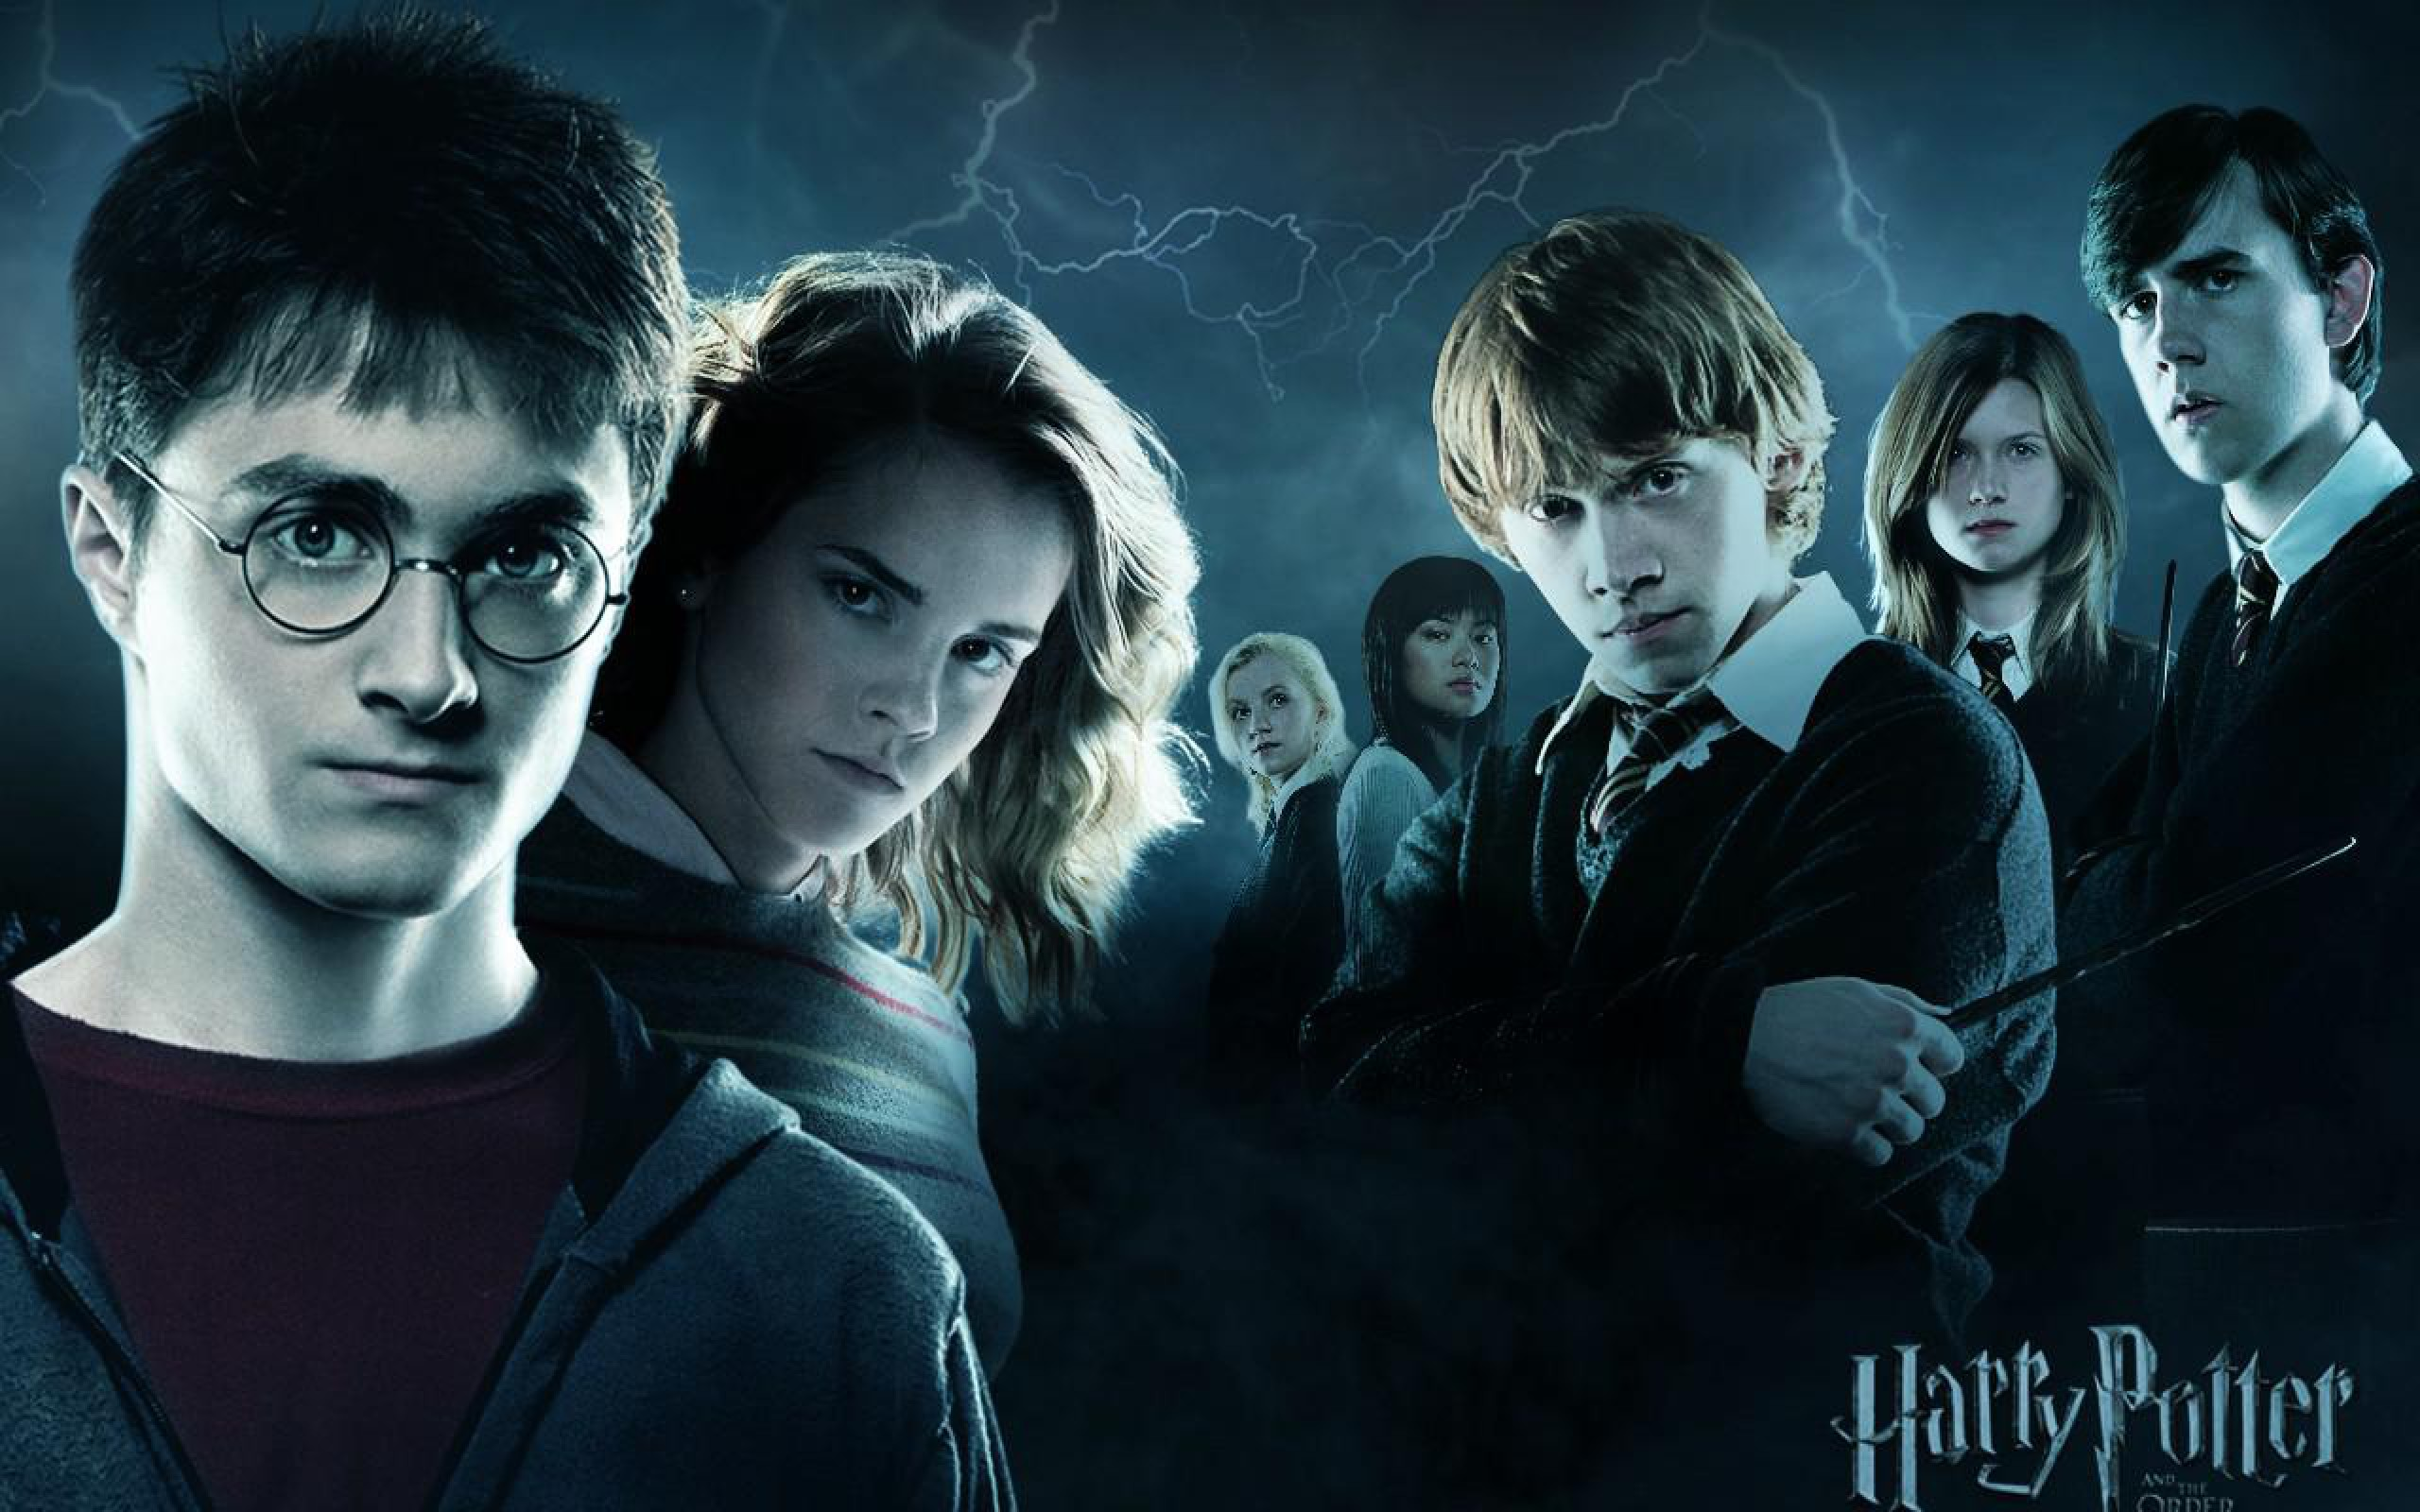 Cool Wallpaper Harry Potter Facebook - Harry-Potter-Wallpaper-111  Image_487859.jpg